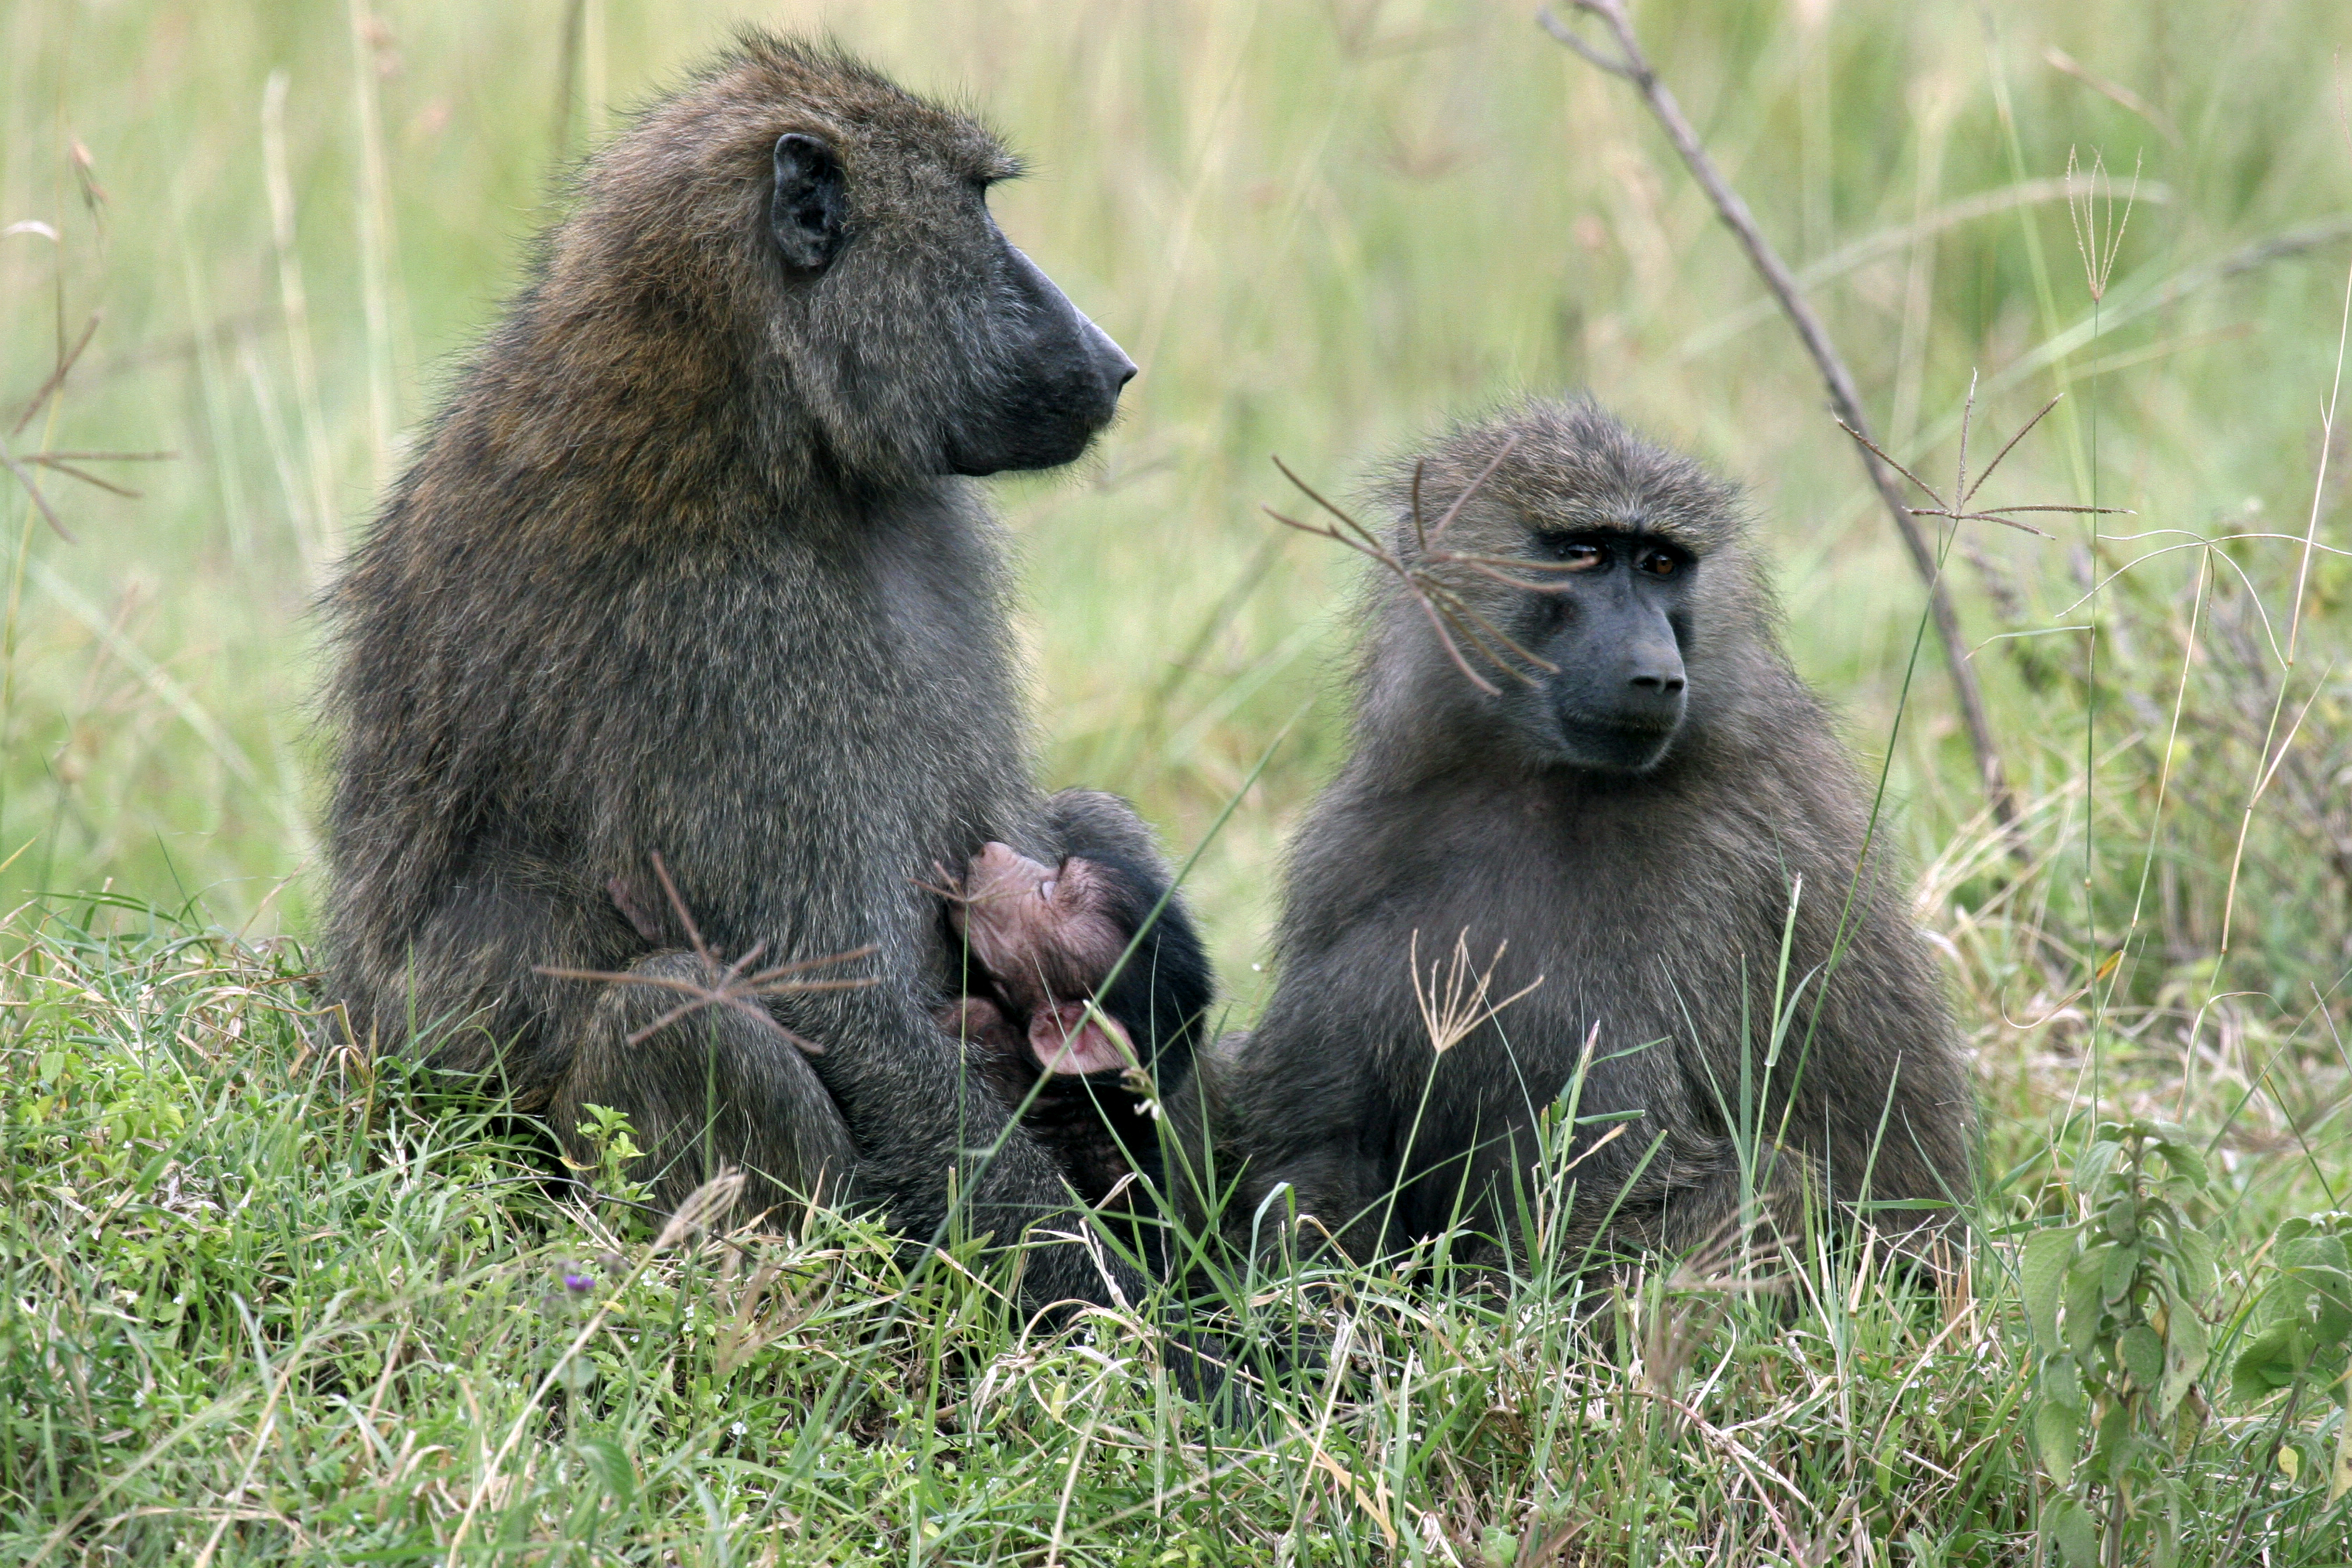 Idaho Wildlife Official Resigns After Backlash For Killing Baboon Family